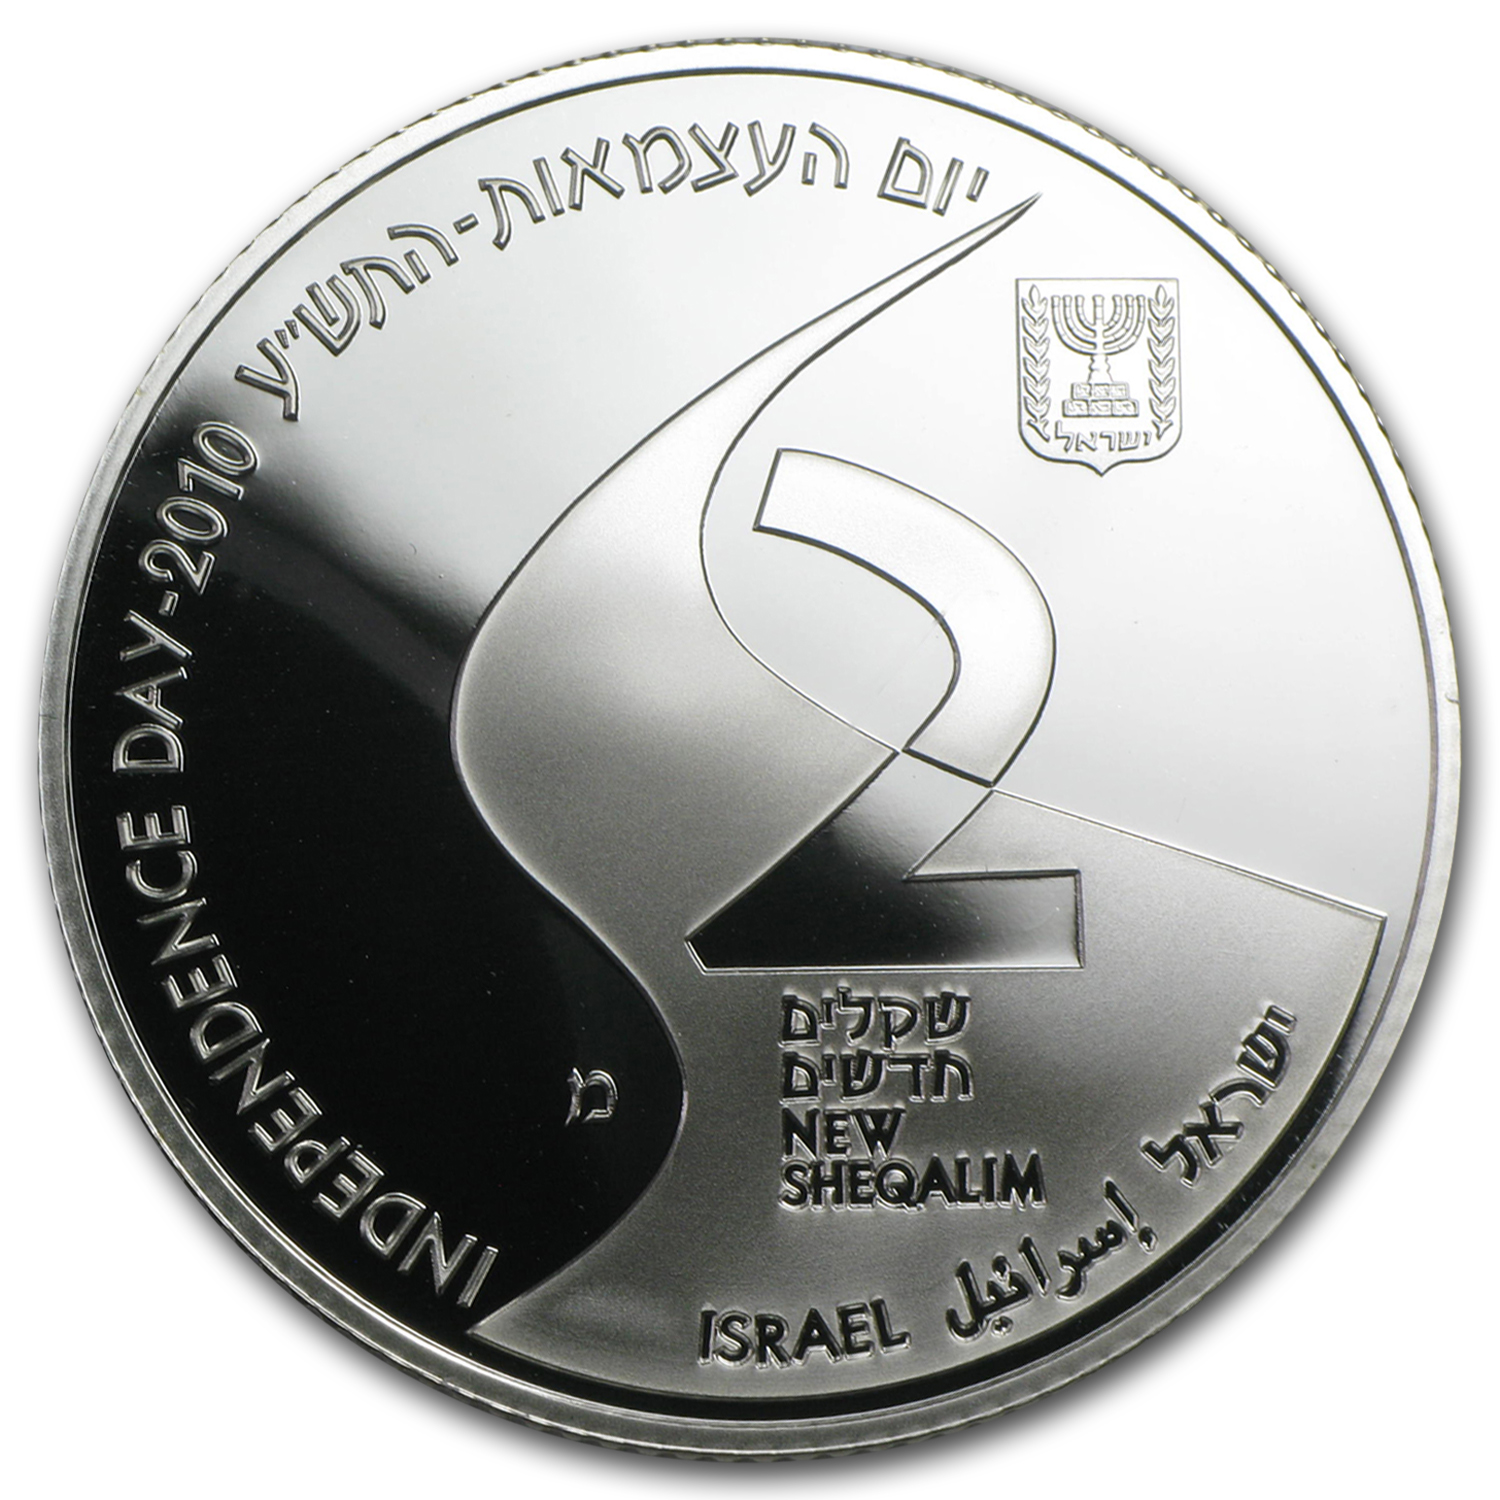 2010 Israel Silver 2 NIS National Trail Proof (w/Box & COA)